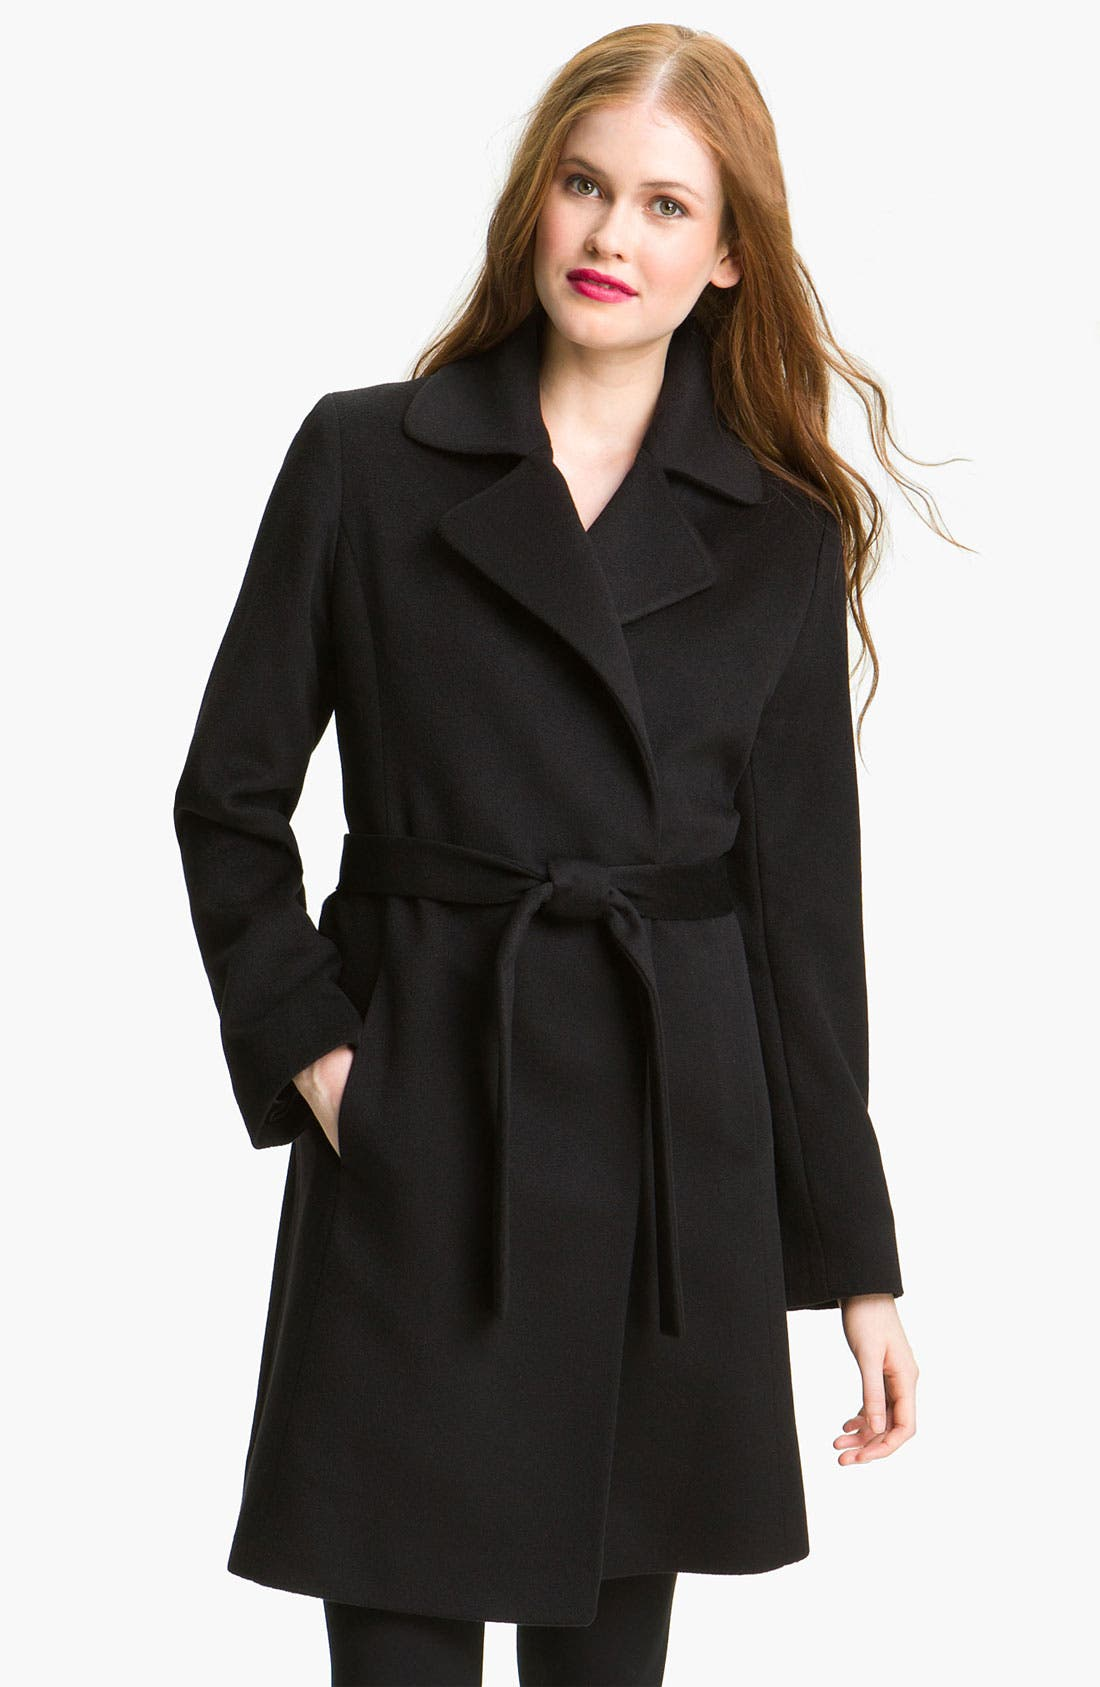 Alternate Image 1 Selected - Fleurette Cashmere Wrap Coat (Online Exclusive)